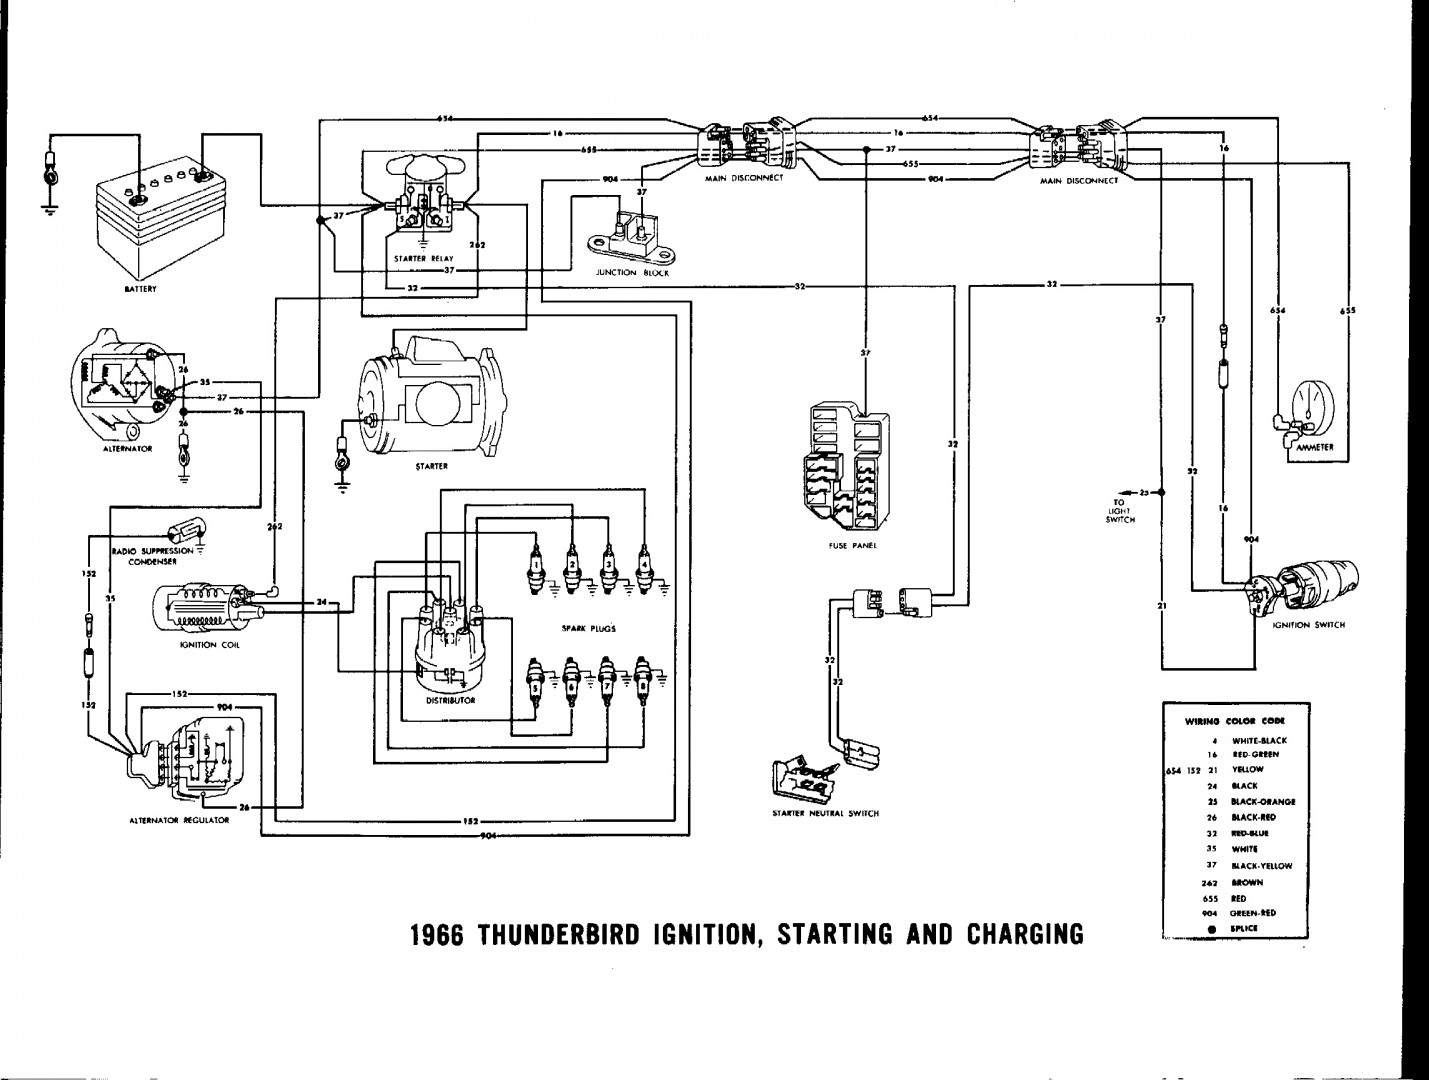 1966 Thunderbird iginition diagram